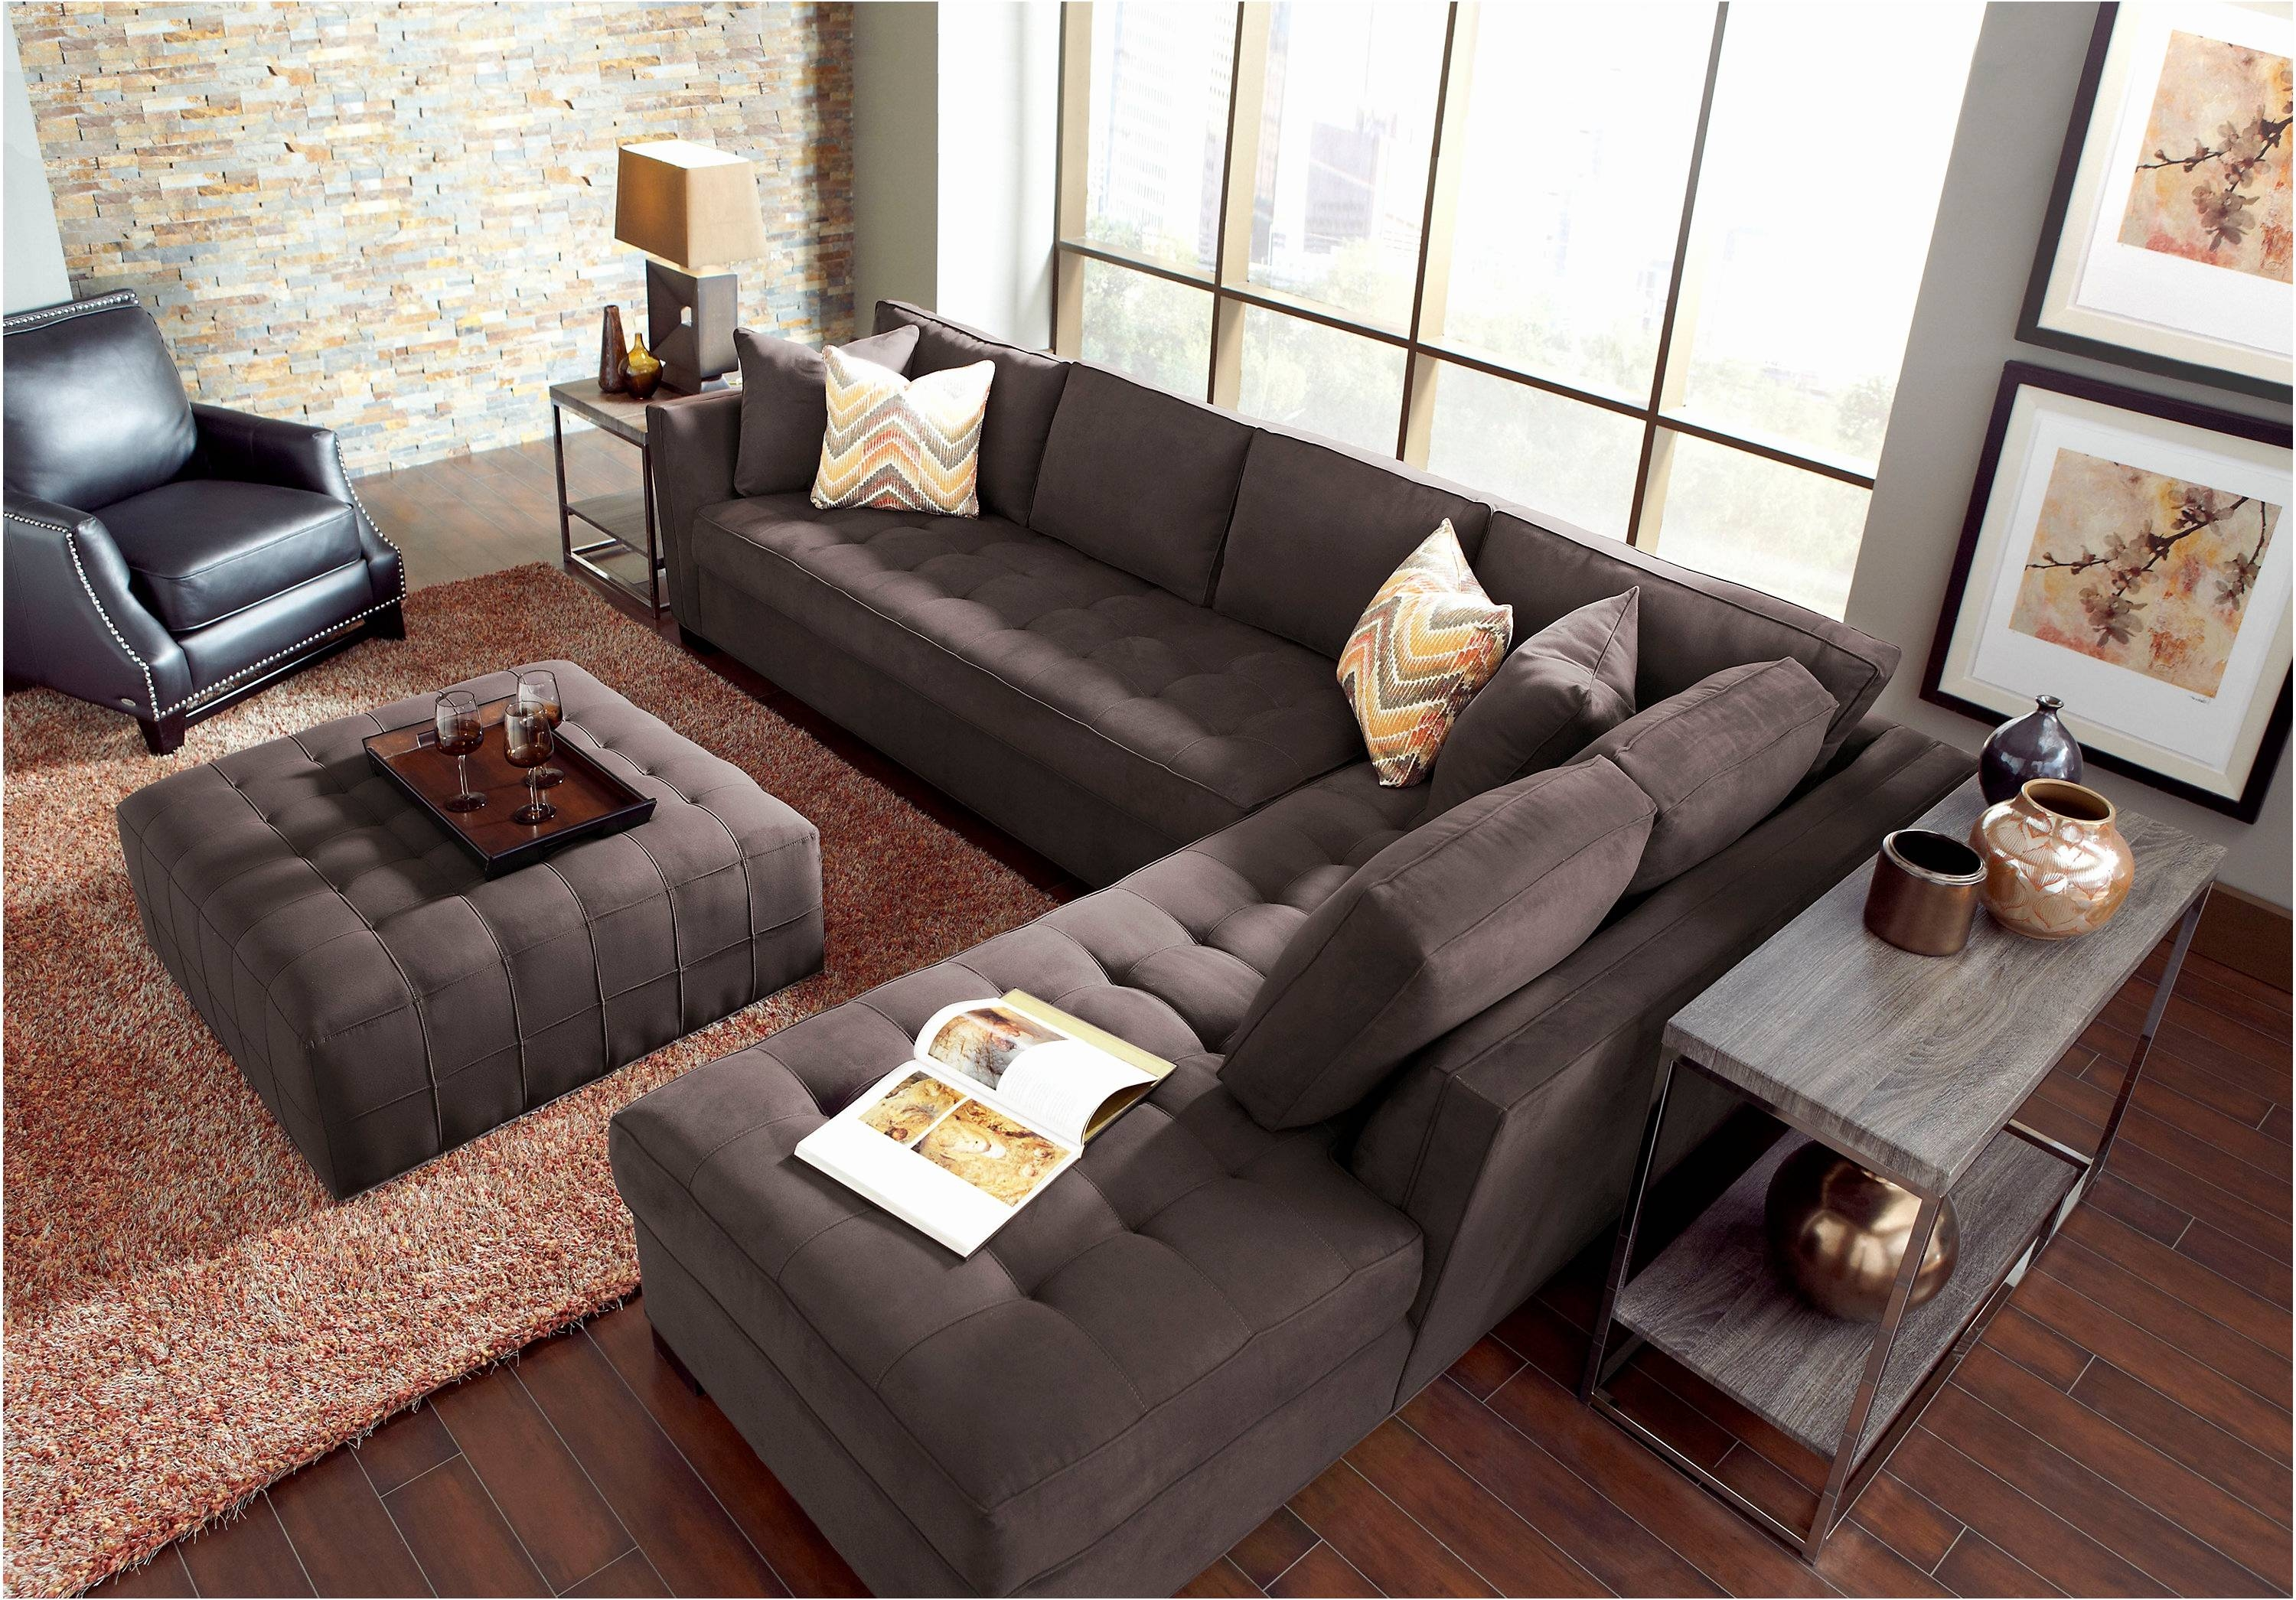 Cindy Crawford Sofas Awesome Furniture Cindy Crawford Sectional with regard to Cindy Crawford Sectional Sofas (Image 4 of 15)